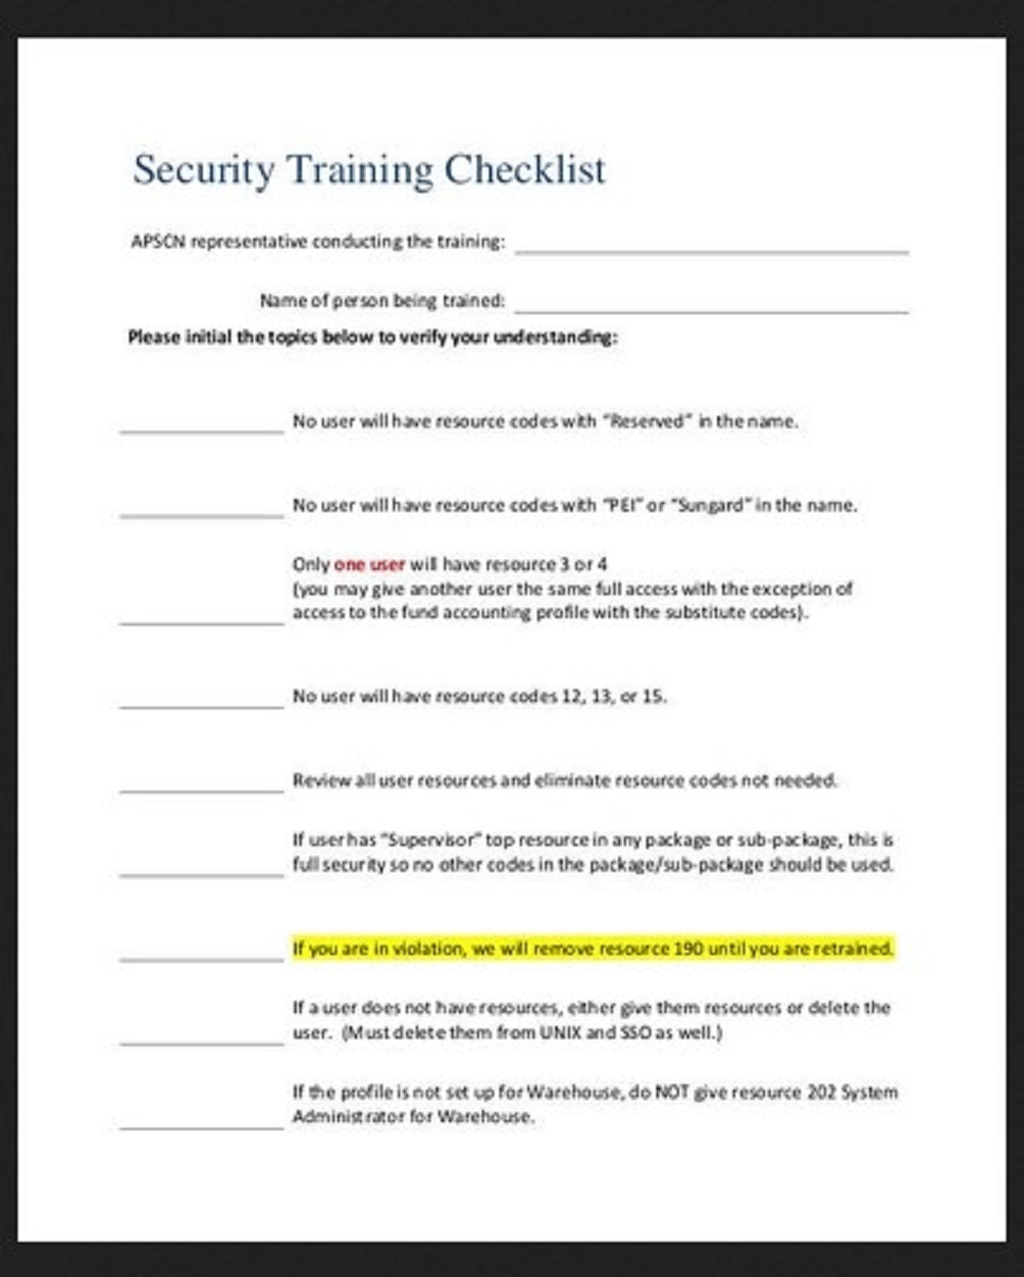 Security Training Checklist Sample Employee Word Pdf Template Google Docs  Samples Large